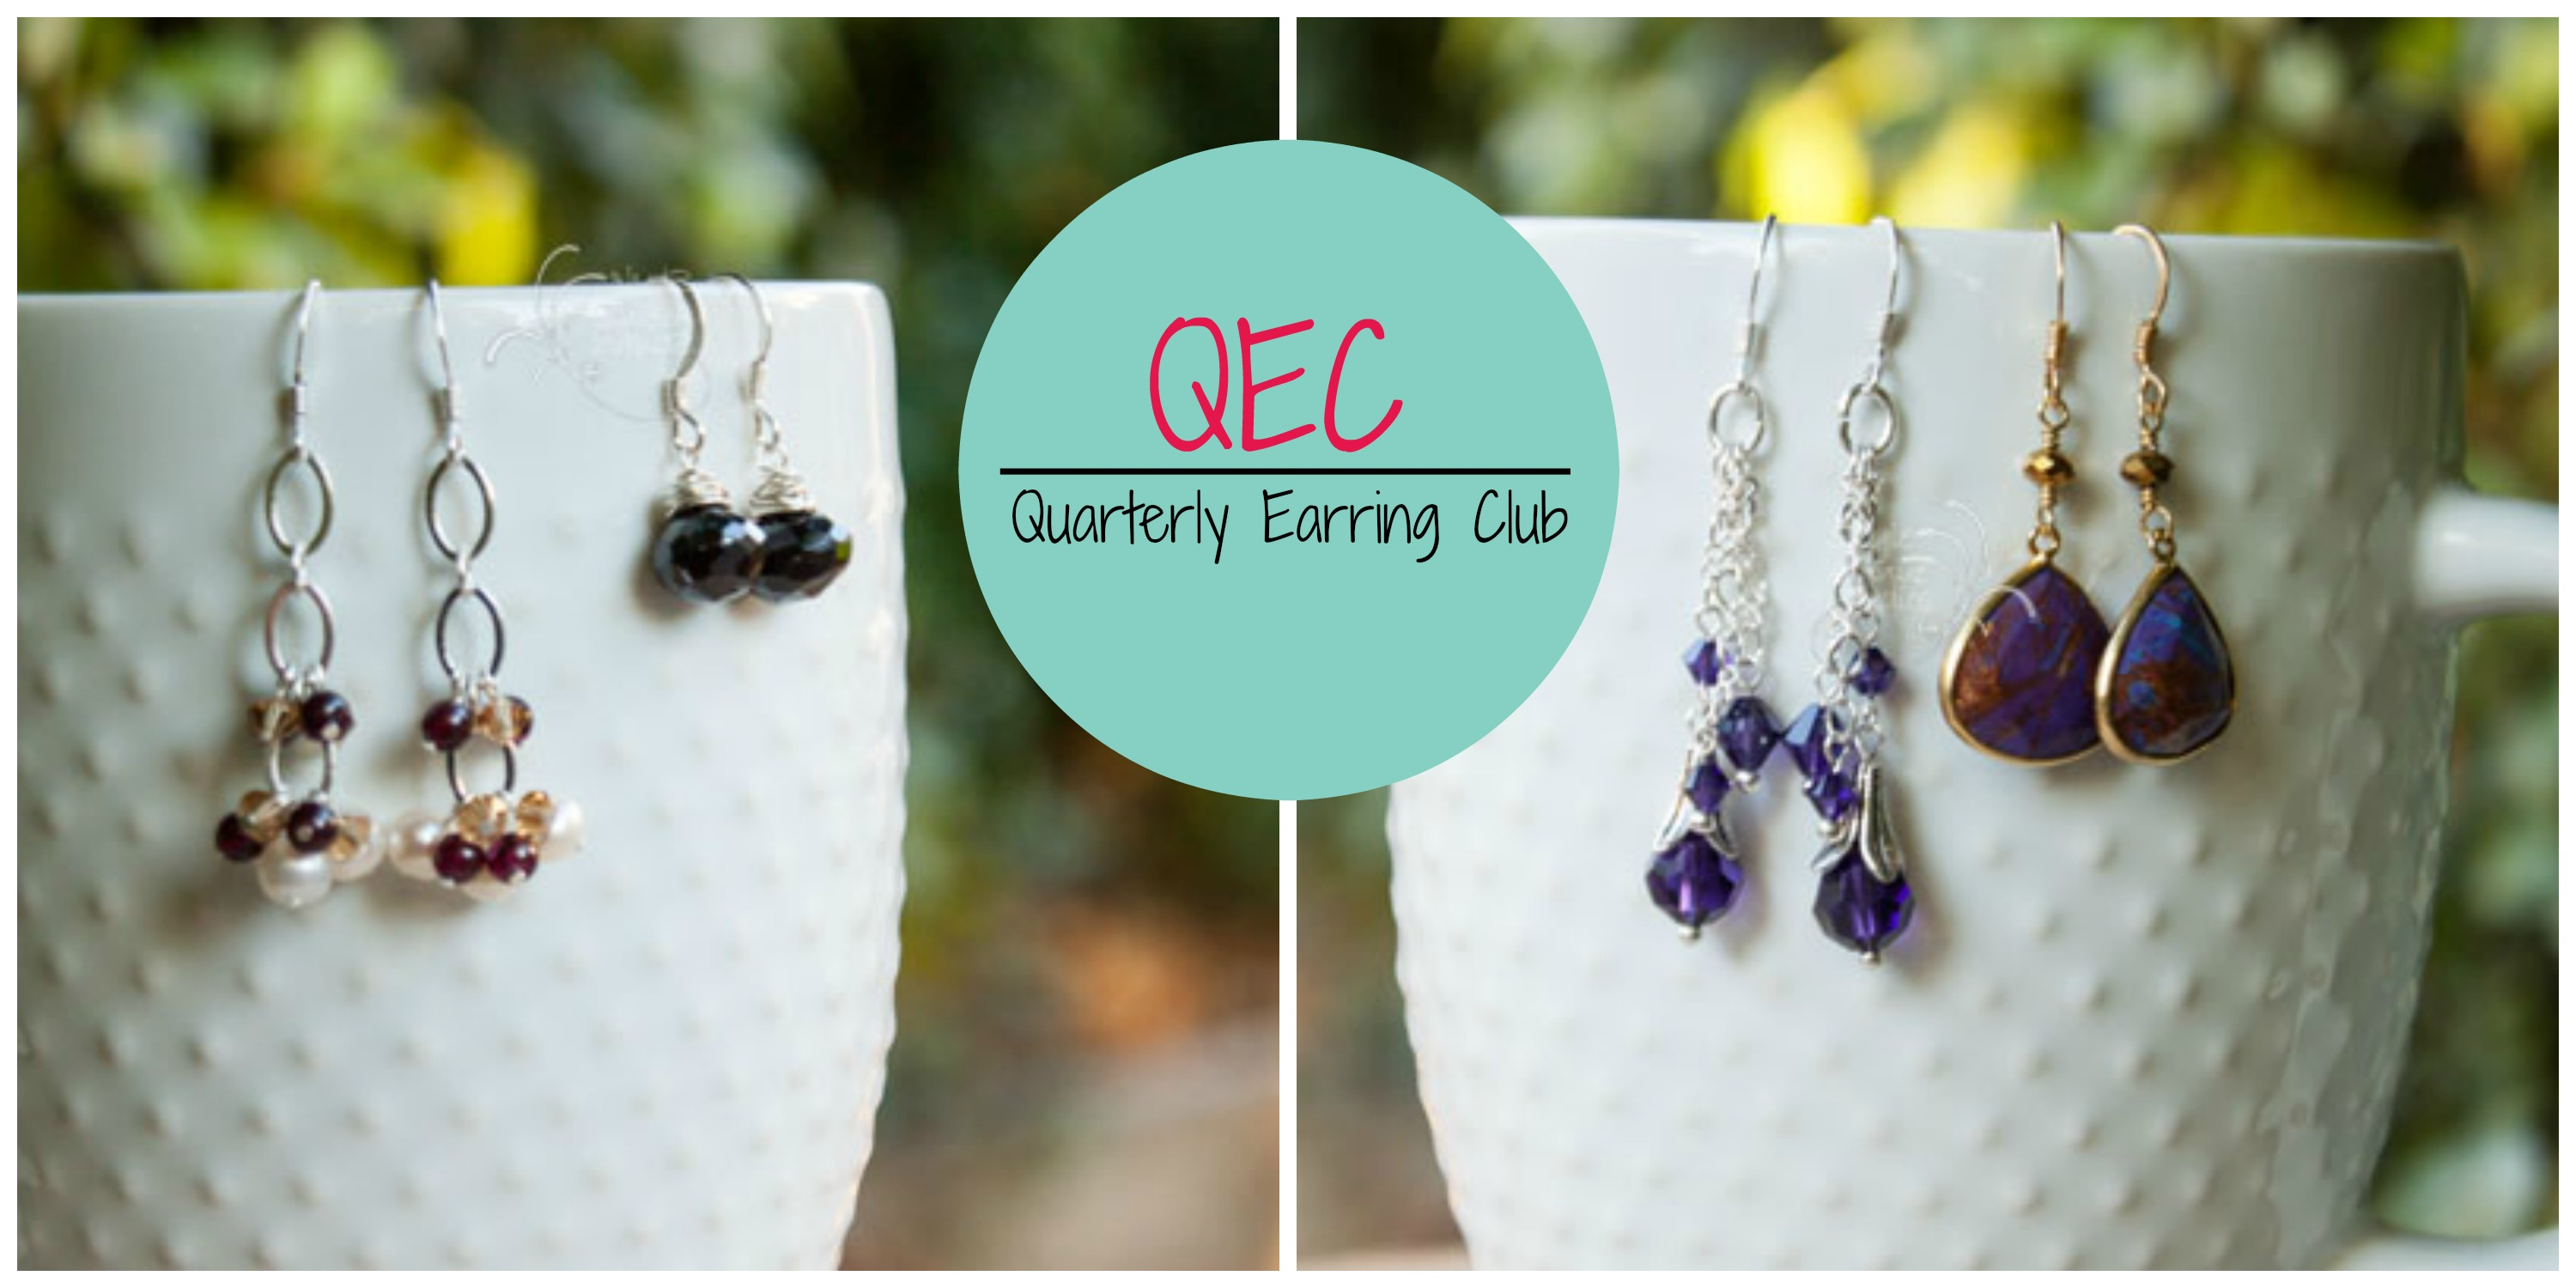 Quarterly Earring Club, handmade earrings, custom jewelry